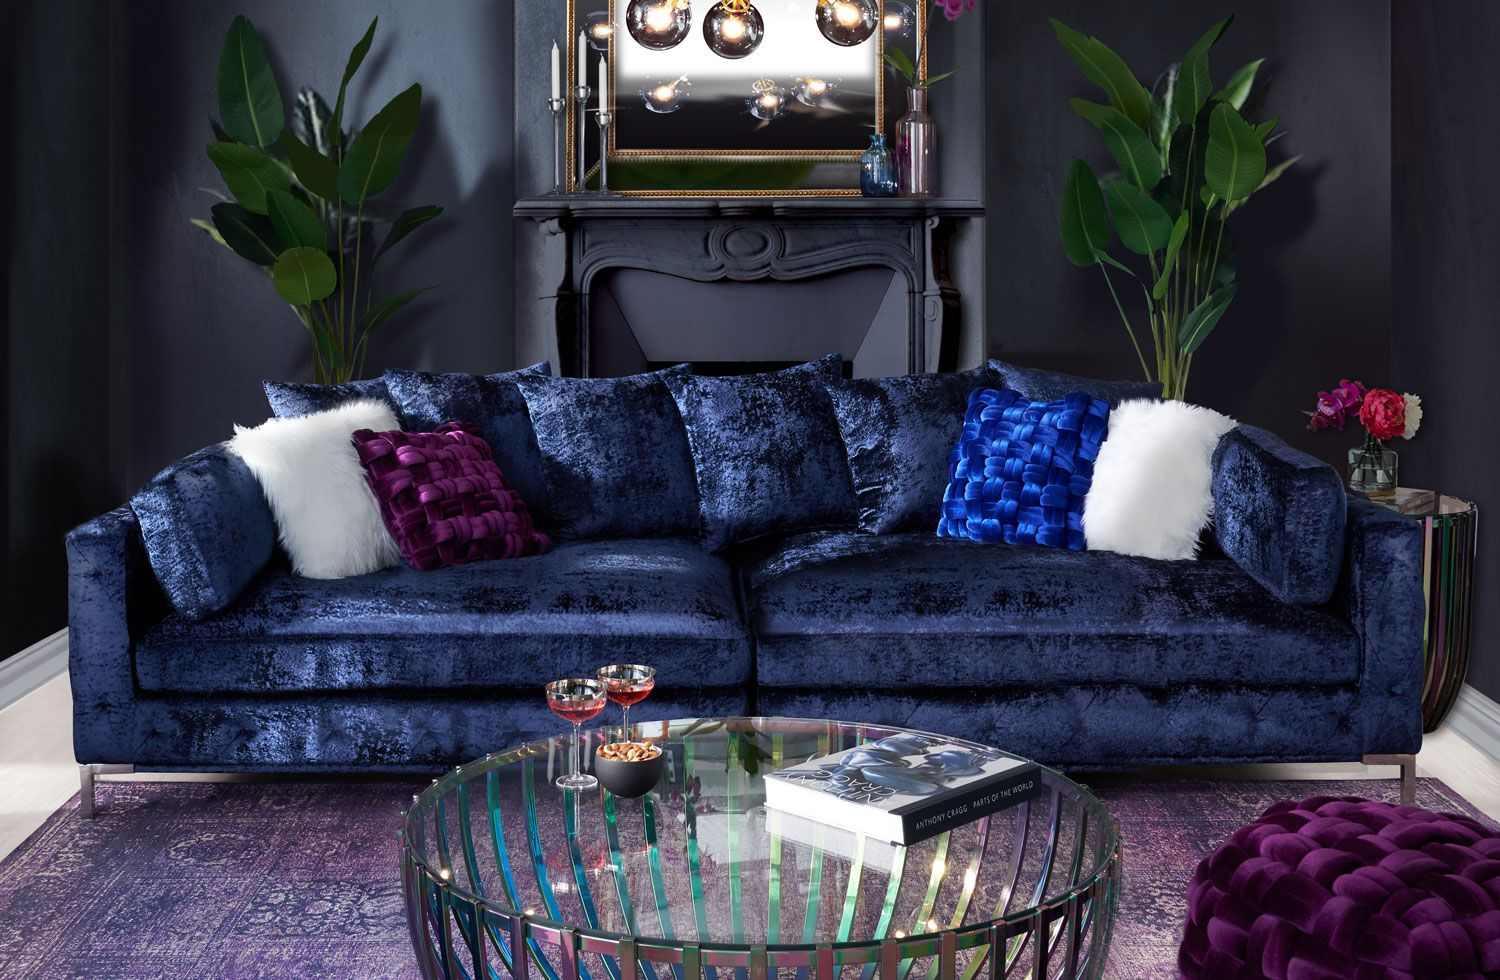 The Milan Collection Value City Furniture And Mattresses In 2020 Furniture Value City Furniture Living Room Seating